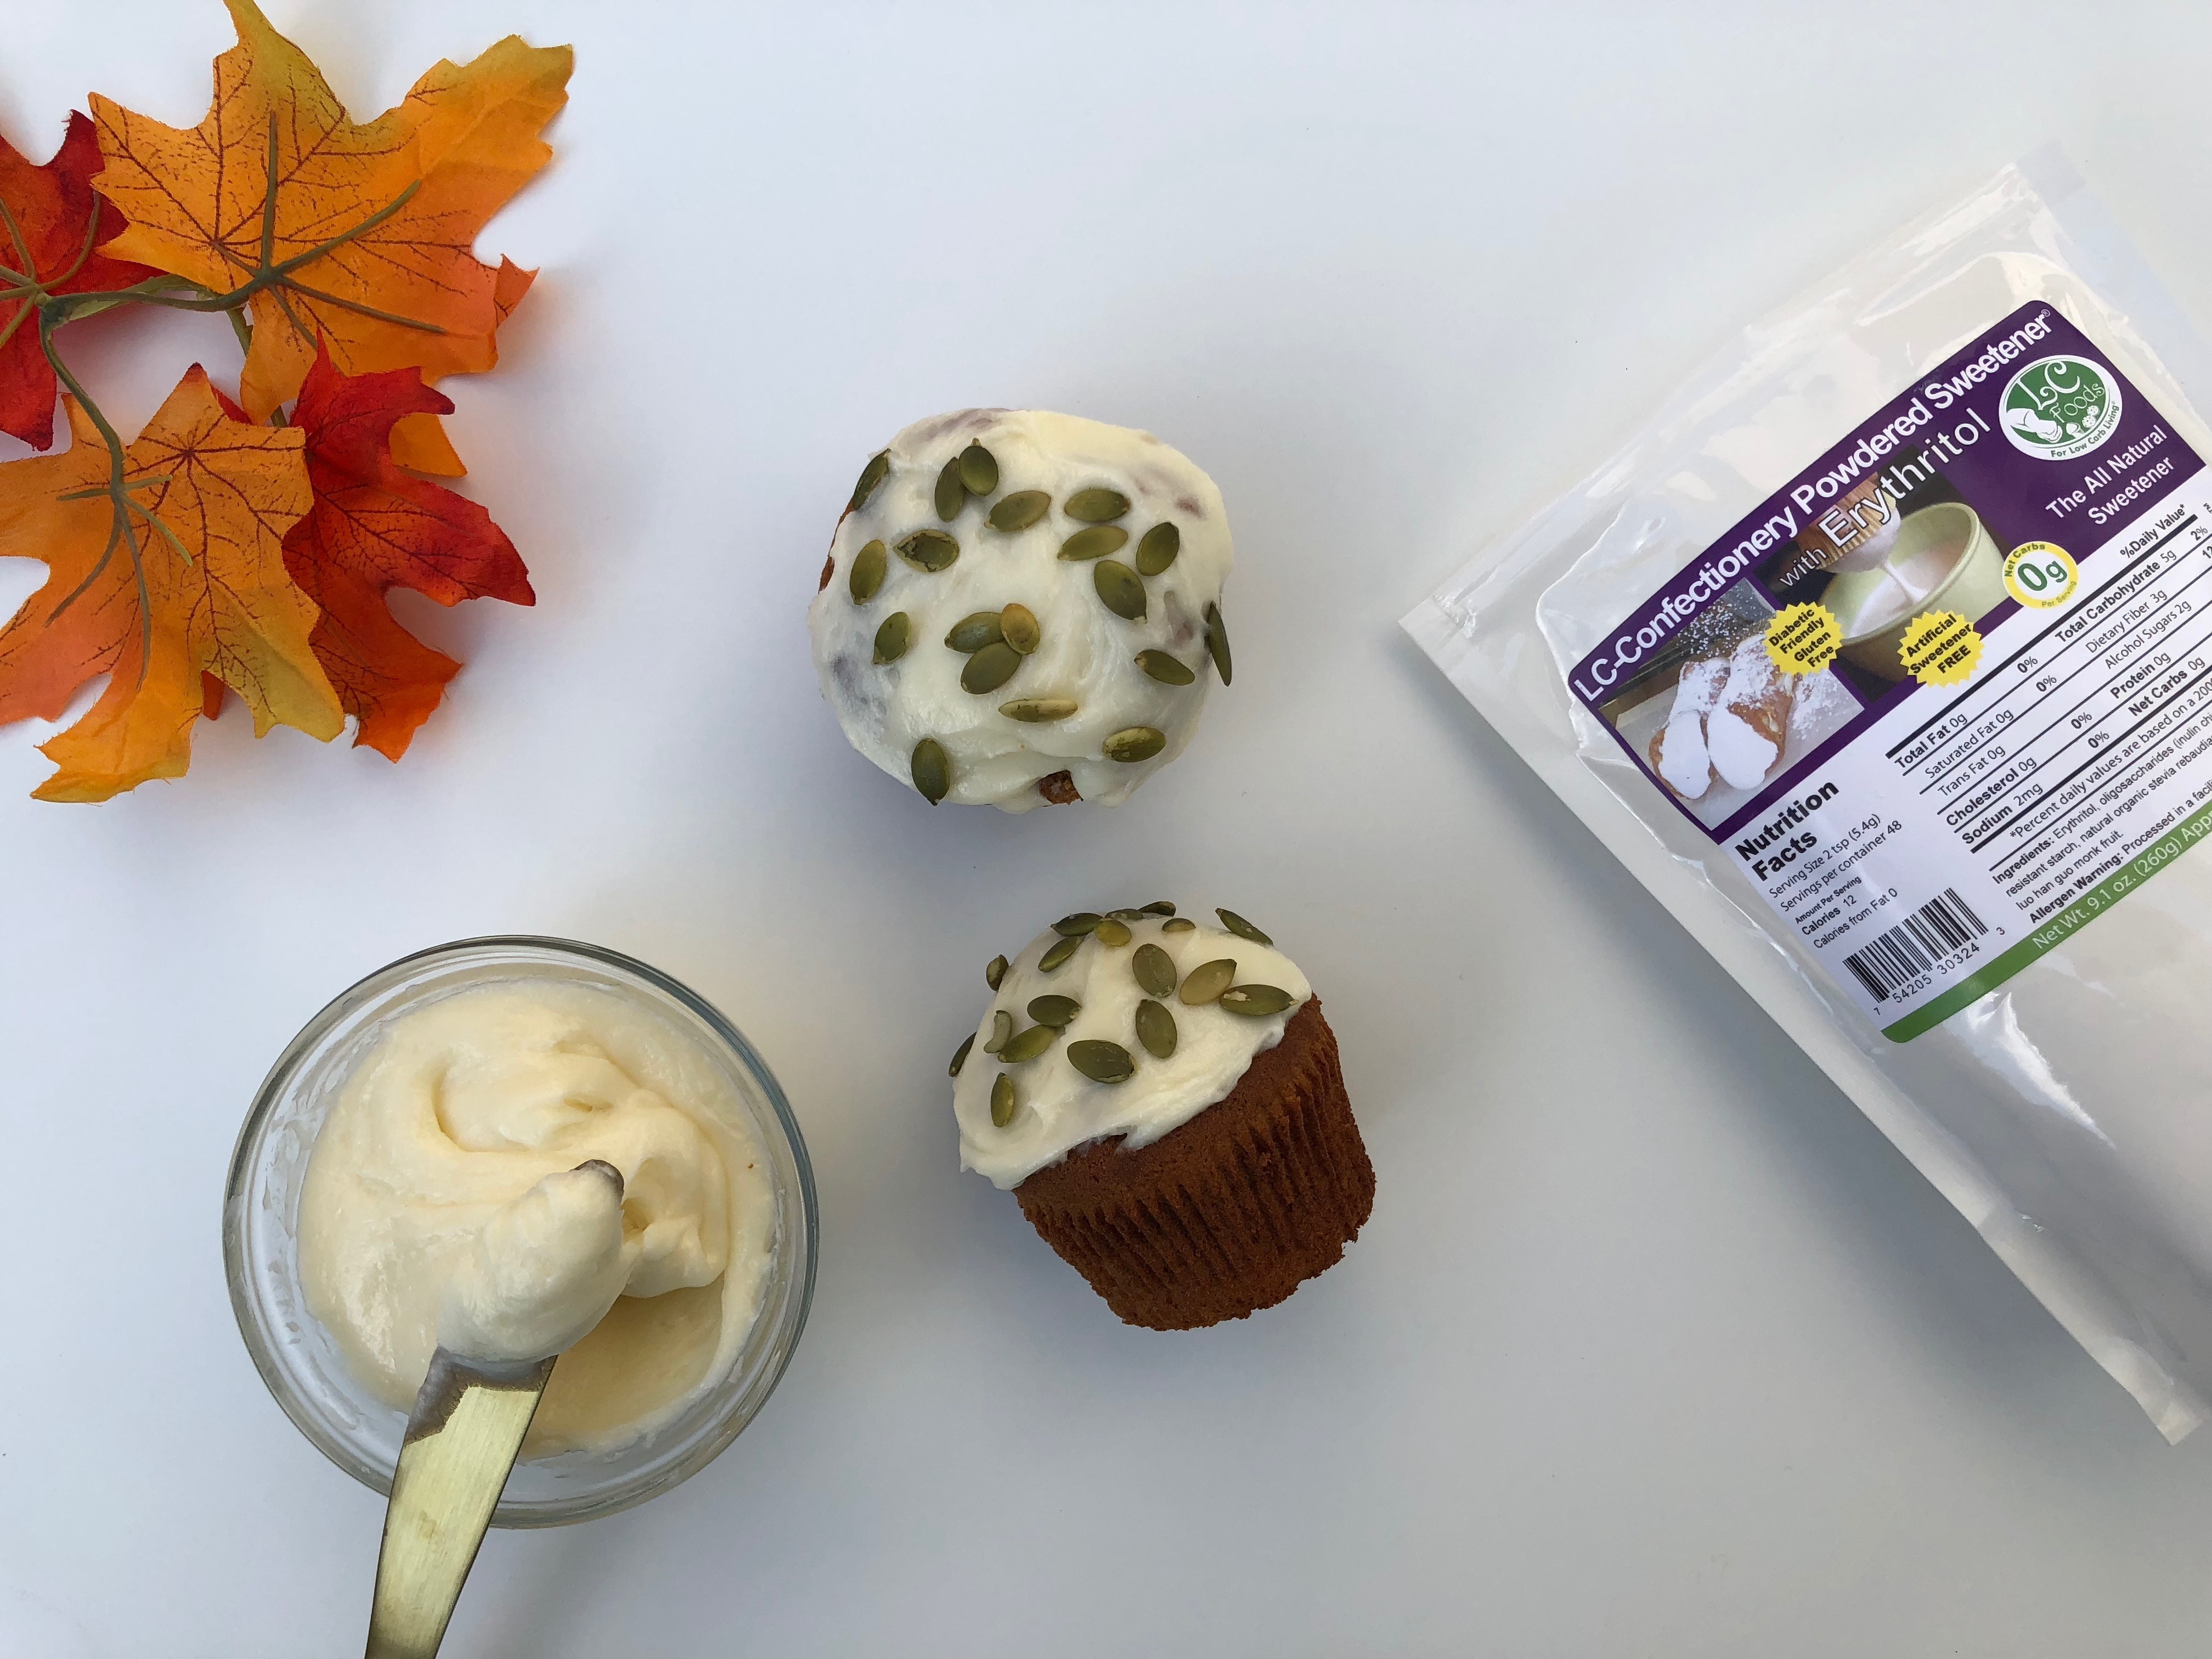 Thumbnail for Low Carb Cream Cheese Frosting